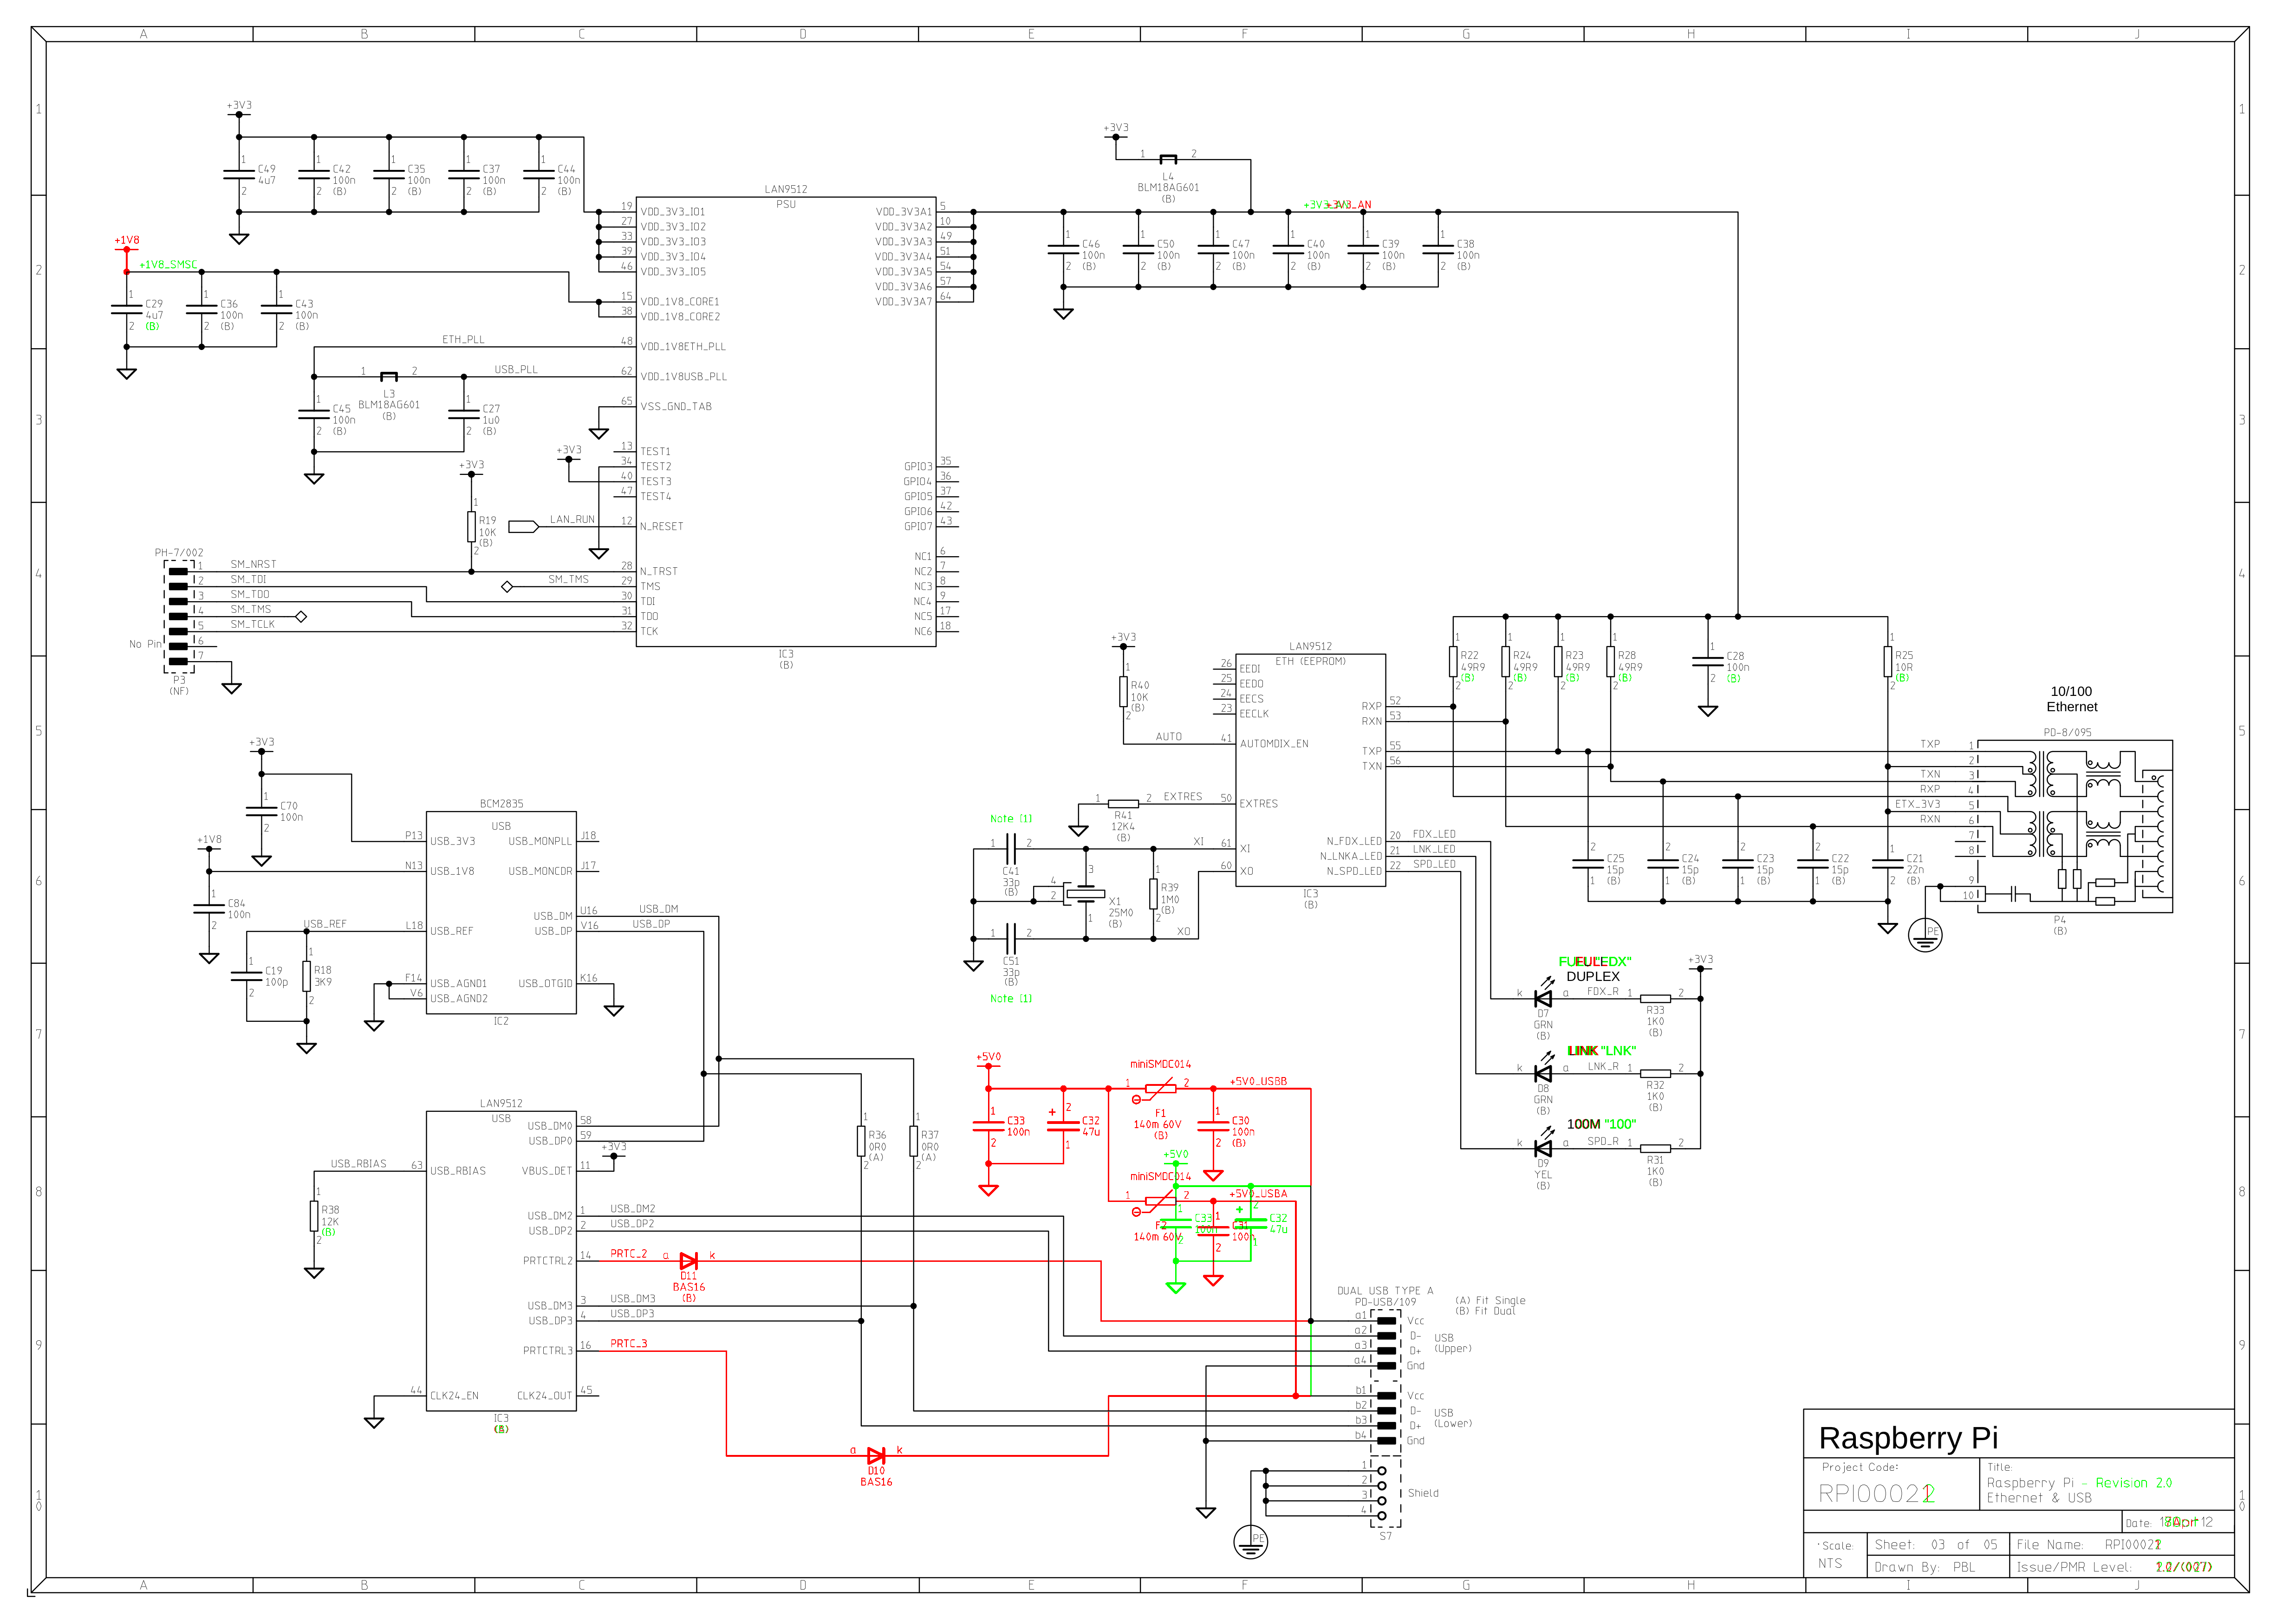 Schematics diff page3 rpi buying guide elinux org